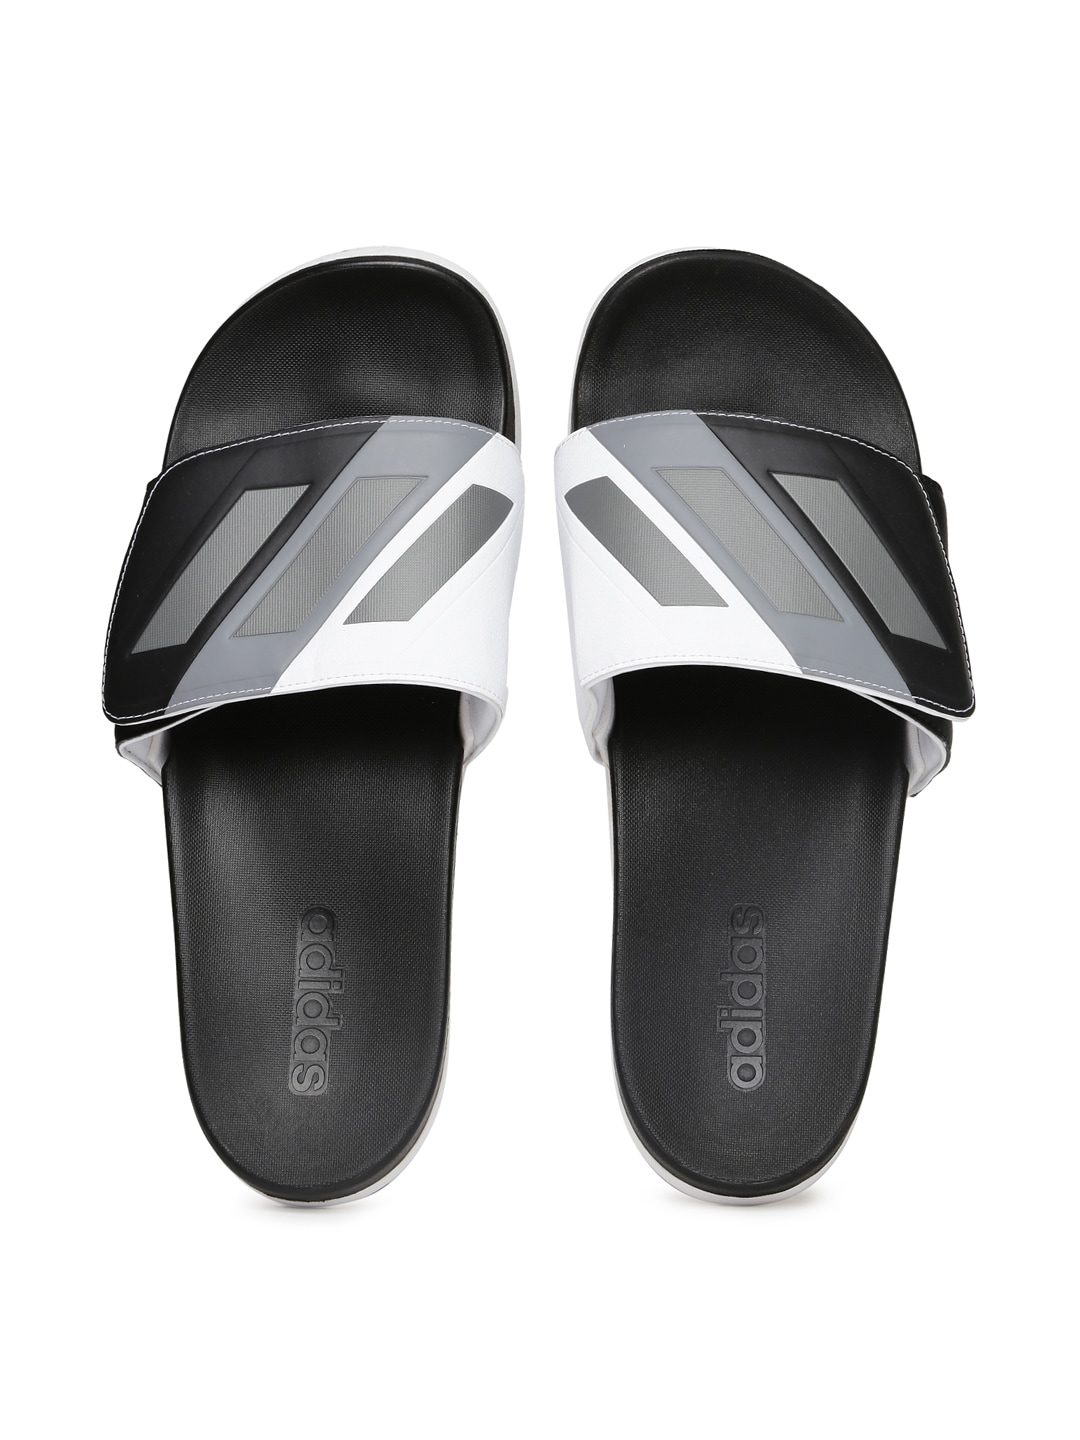 609317ae4b7 Adidas s80344 Men Black And White Flip Flops - Best Price in India ...